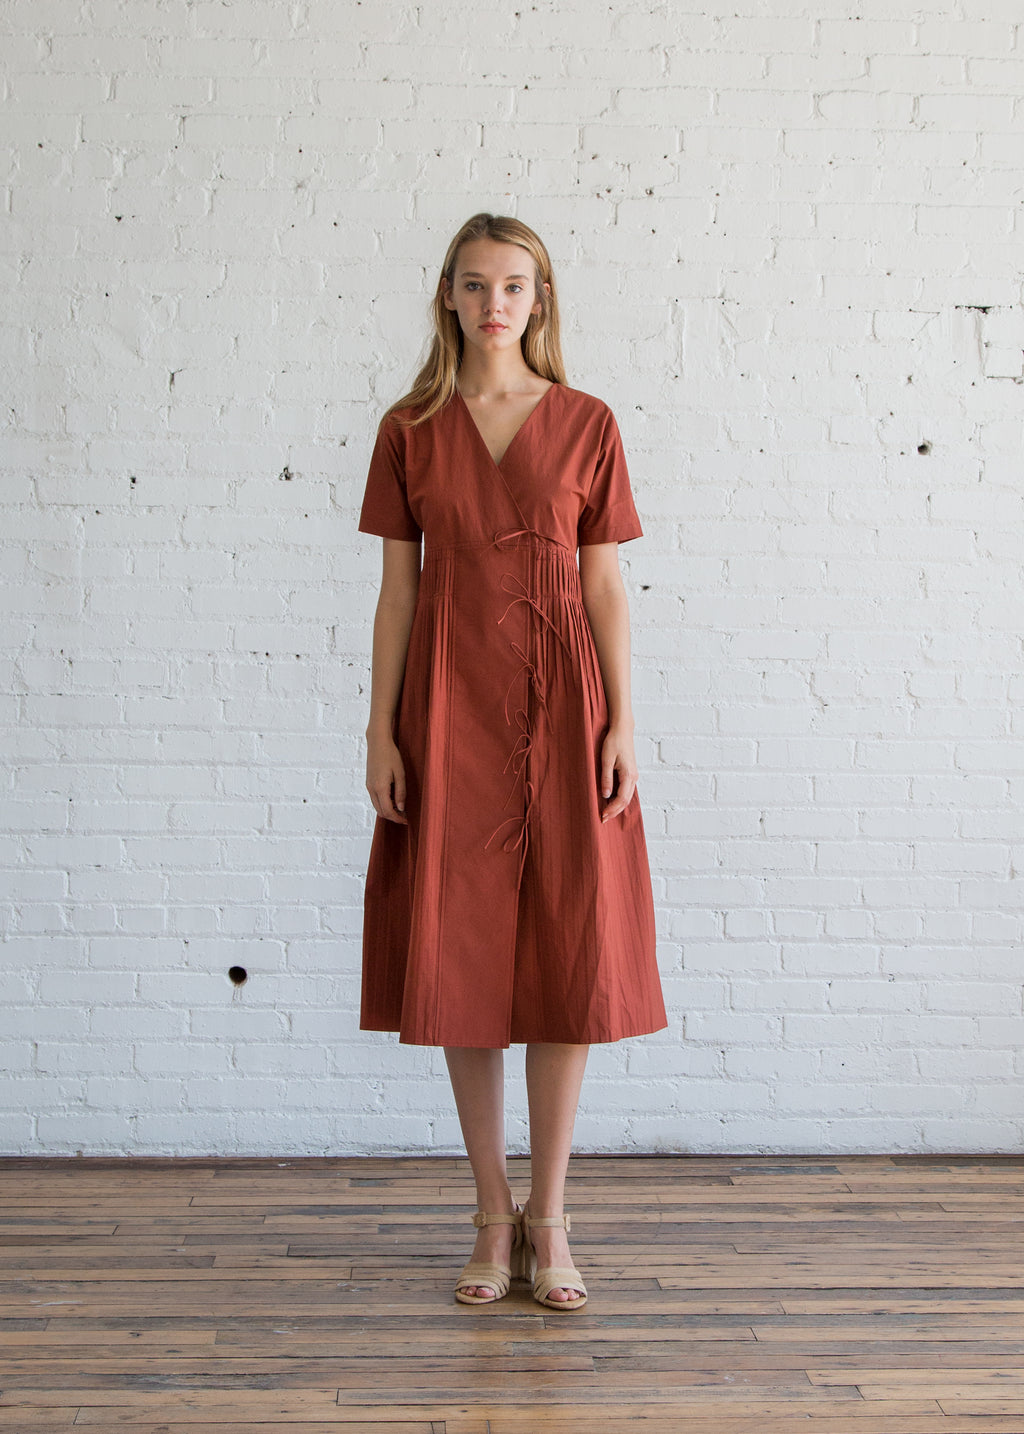 Mica Dress Rust Cotton Poplin